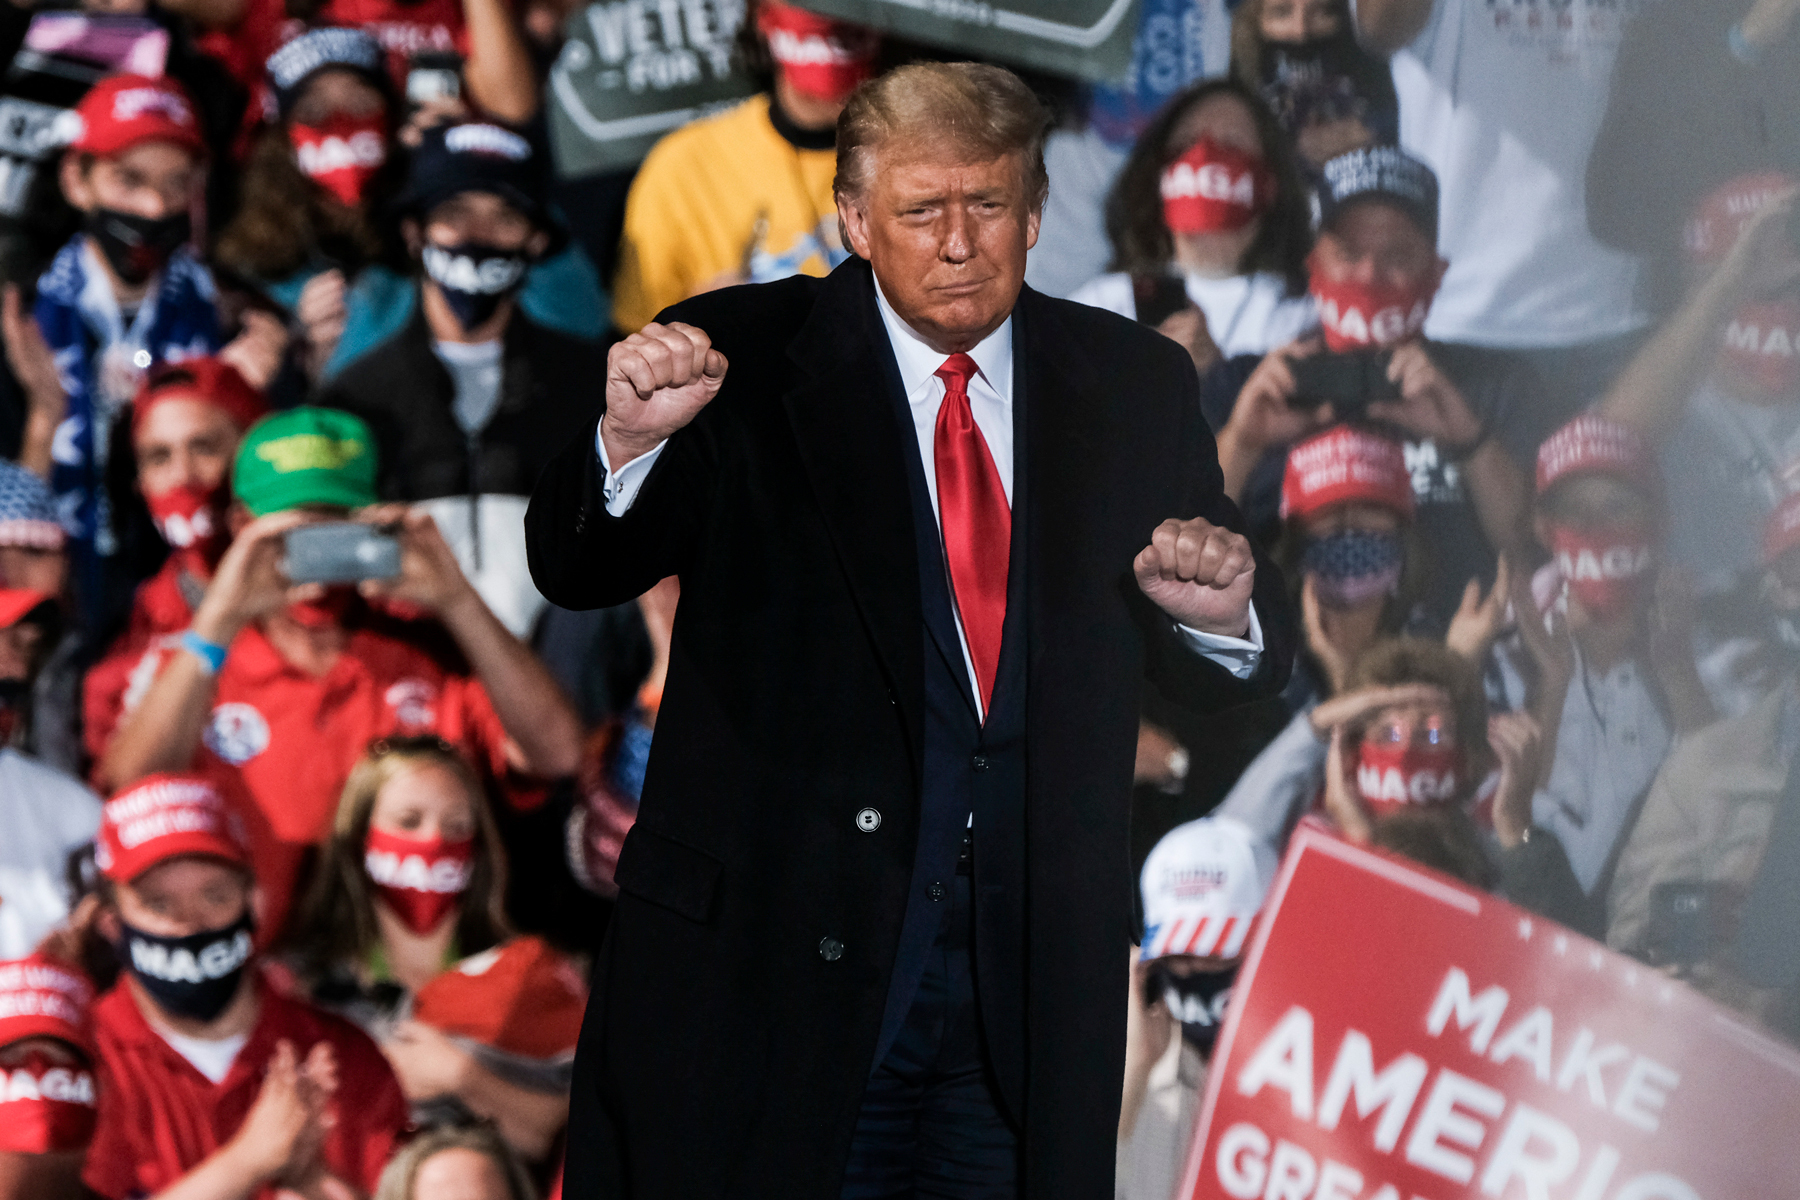 President Donald Trump charges up the crowd while speaking of the need to win the upcoming election during a campaign rally at the Toledo Express Airport on September 21, 2020 in Swanton, Ohio. Through the rally the President both expressed the importance of filling the late Supreme Court Justice Ruth Bader Ginsberg's seat as well as his perceived consequences to America if his opponent Joe Biden were to win in the upcoming election.